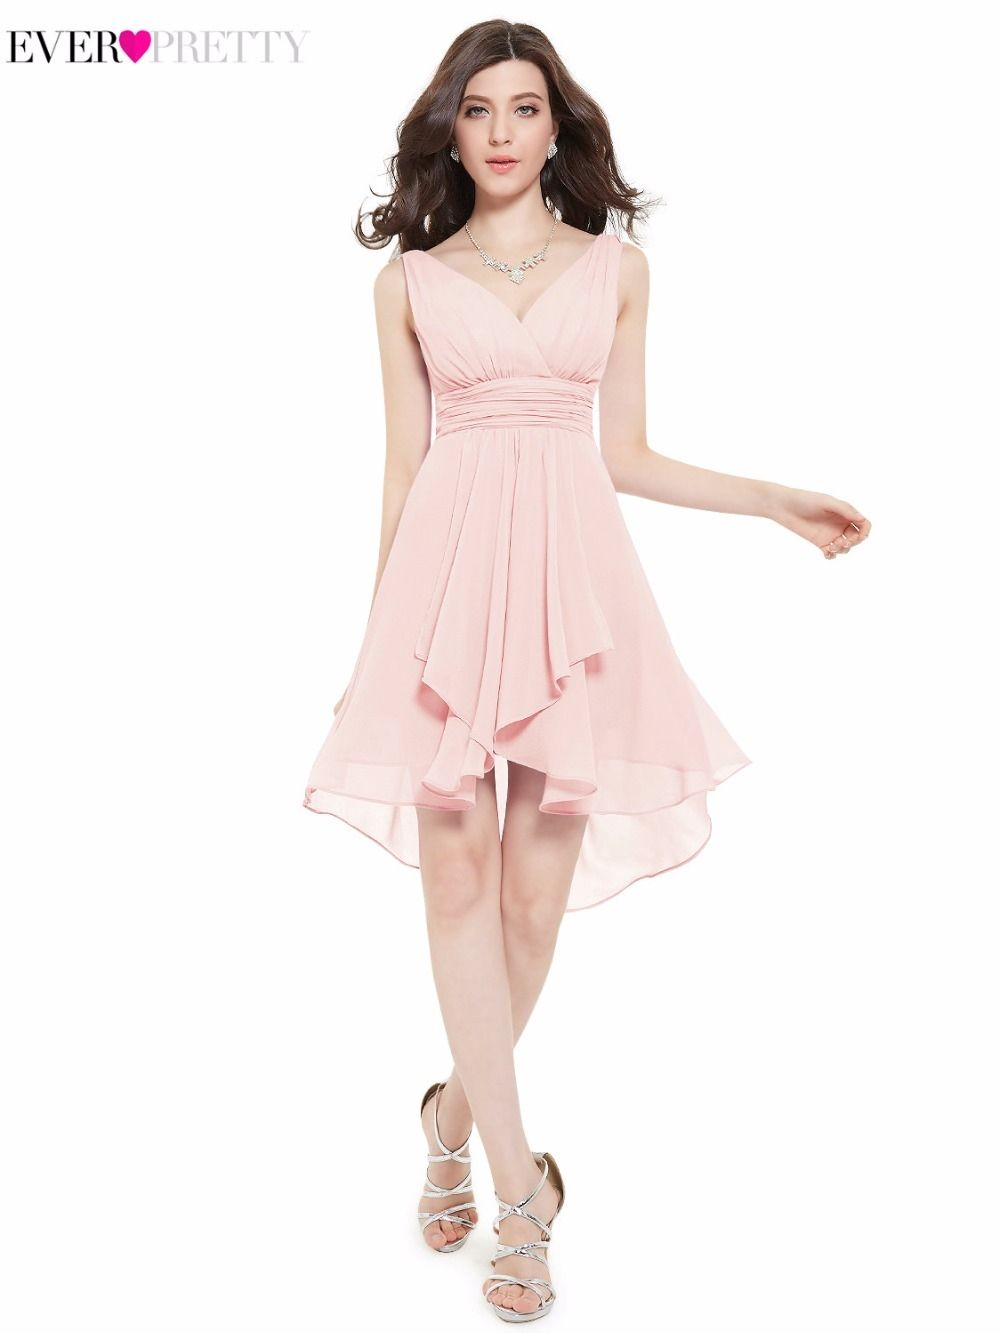 Clearance sale sexy bridesmaid dress ever pretty he short a